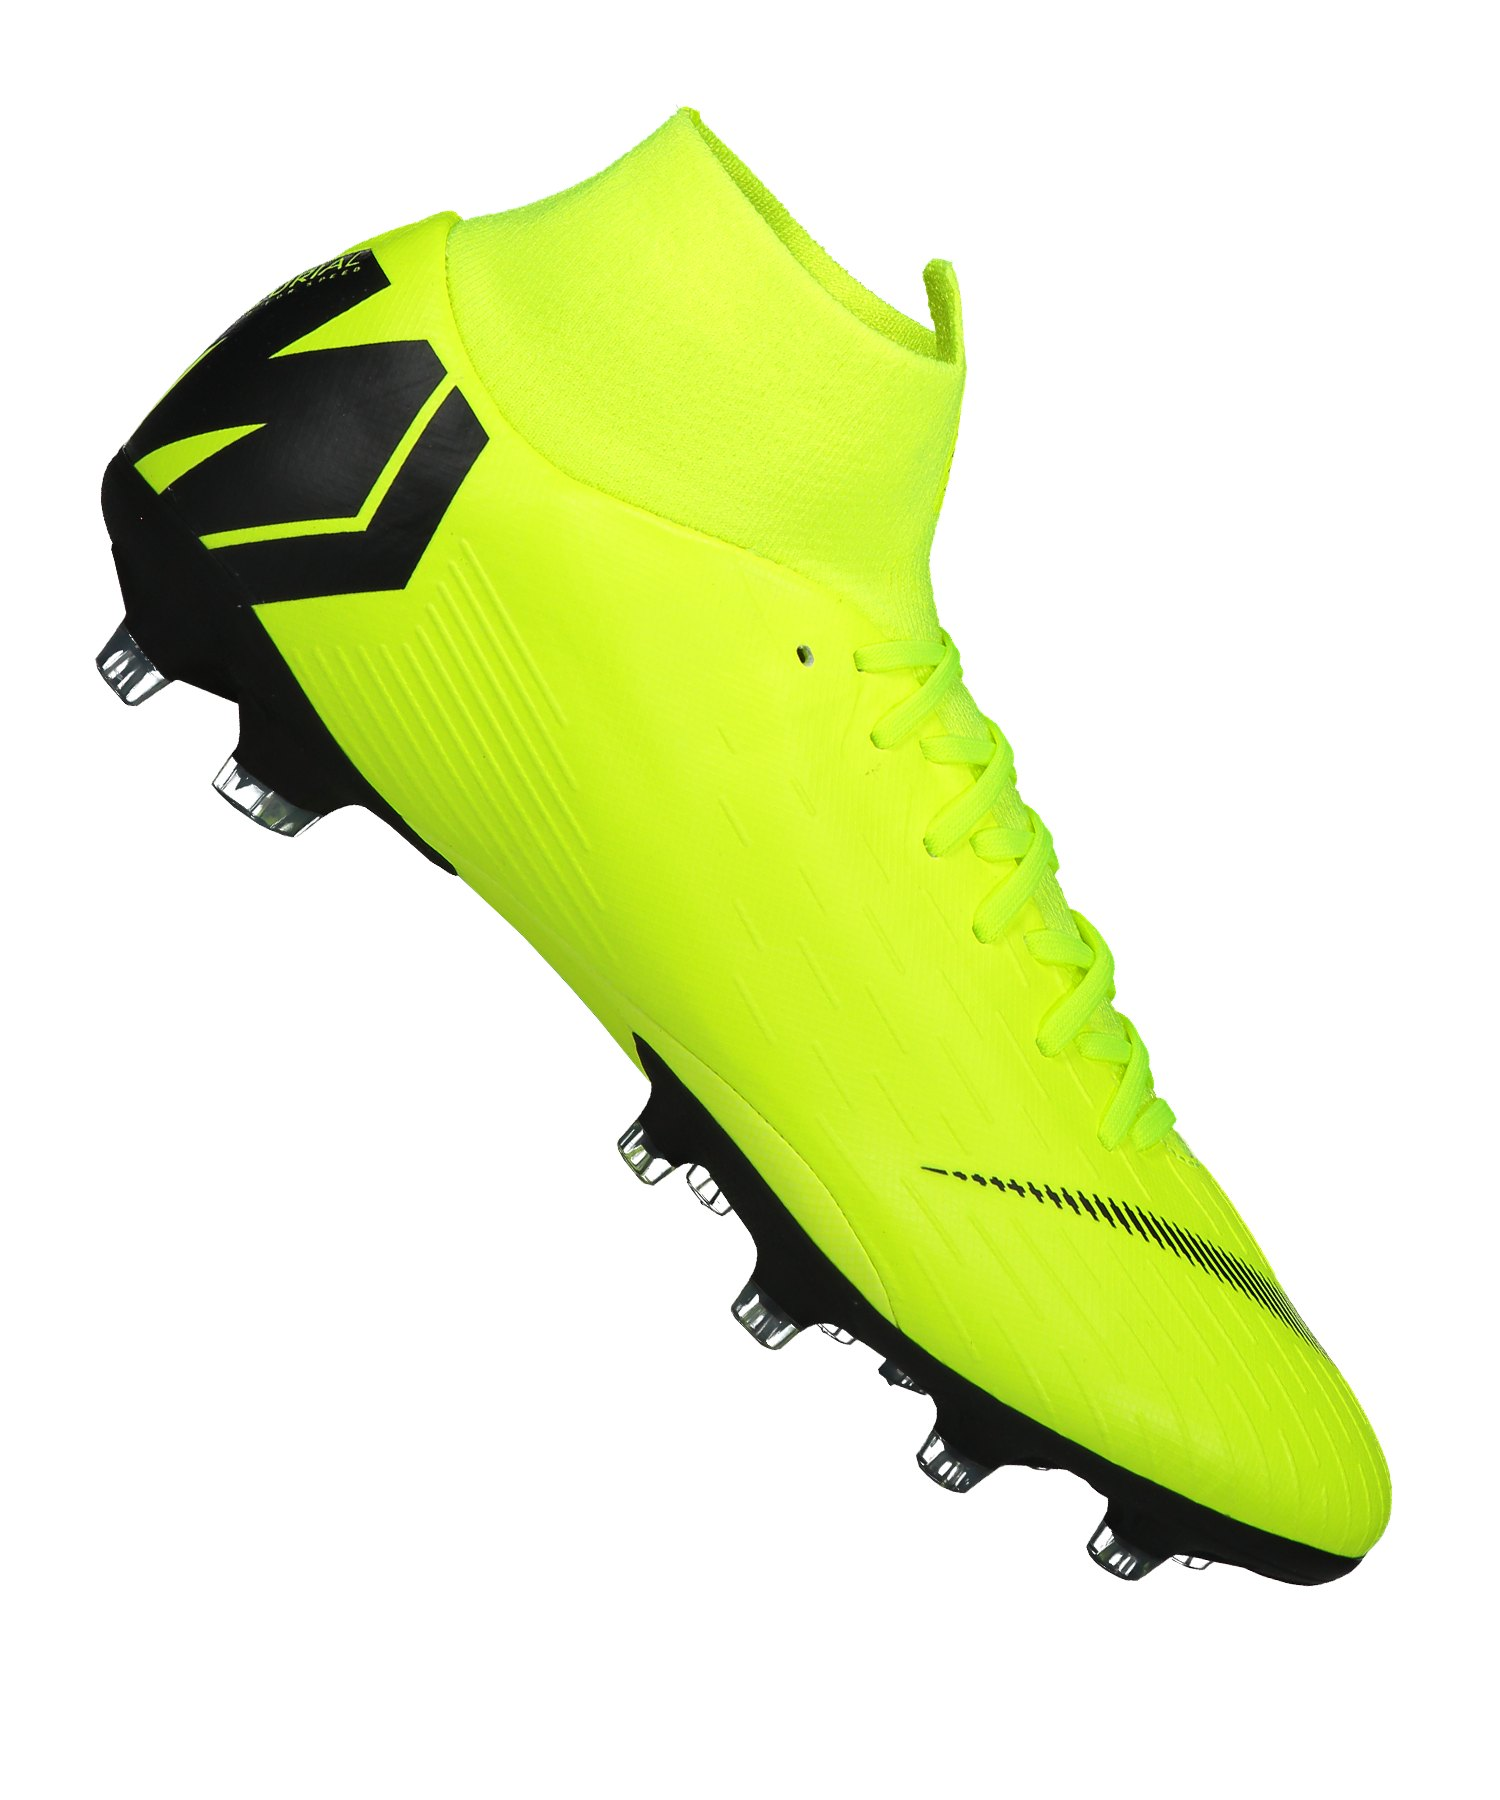 Nike Mercurial Superfly VI Pro AG-Pro Gelb F701 - gelb